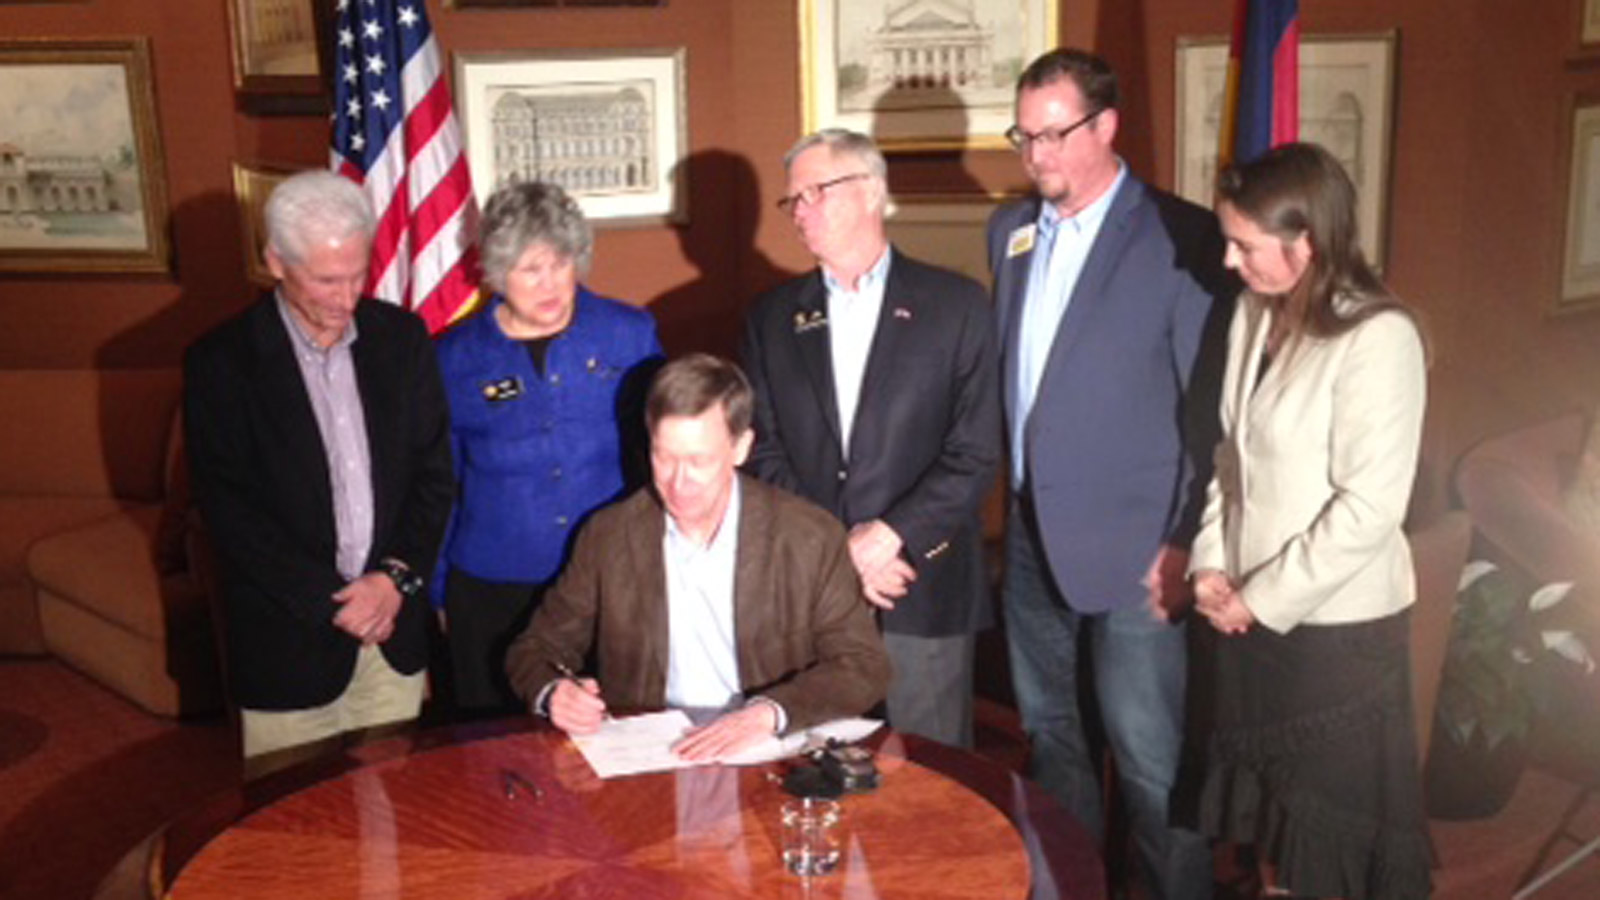 Gov. John Hickenlooper signs a bill into law that will study chains and snow tires for all vehicles on I-70 (credit: CBS)